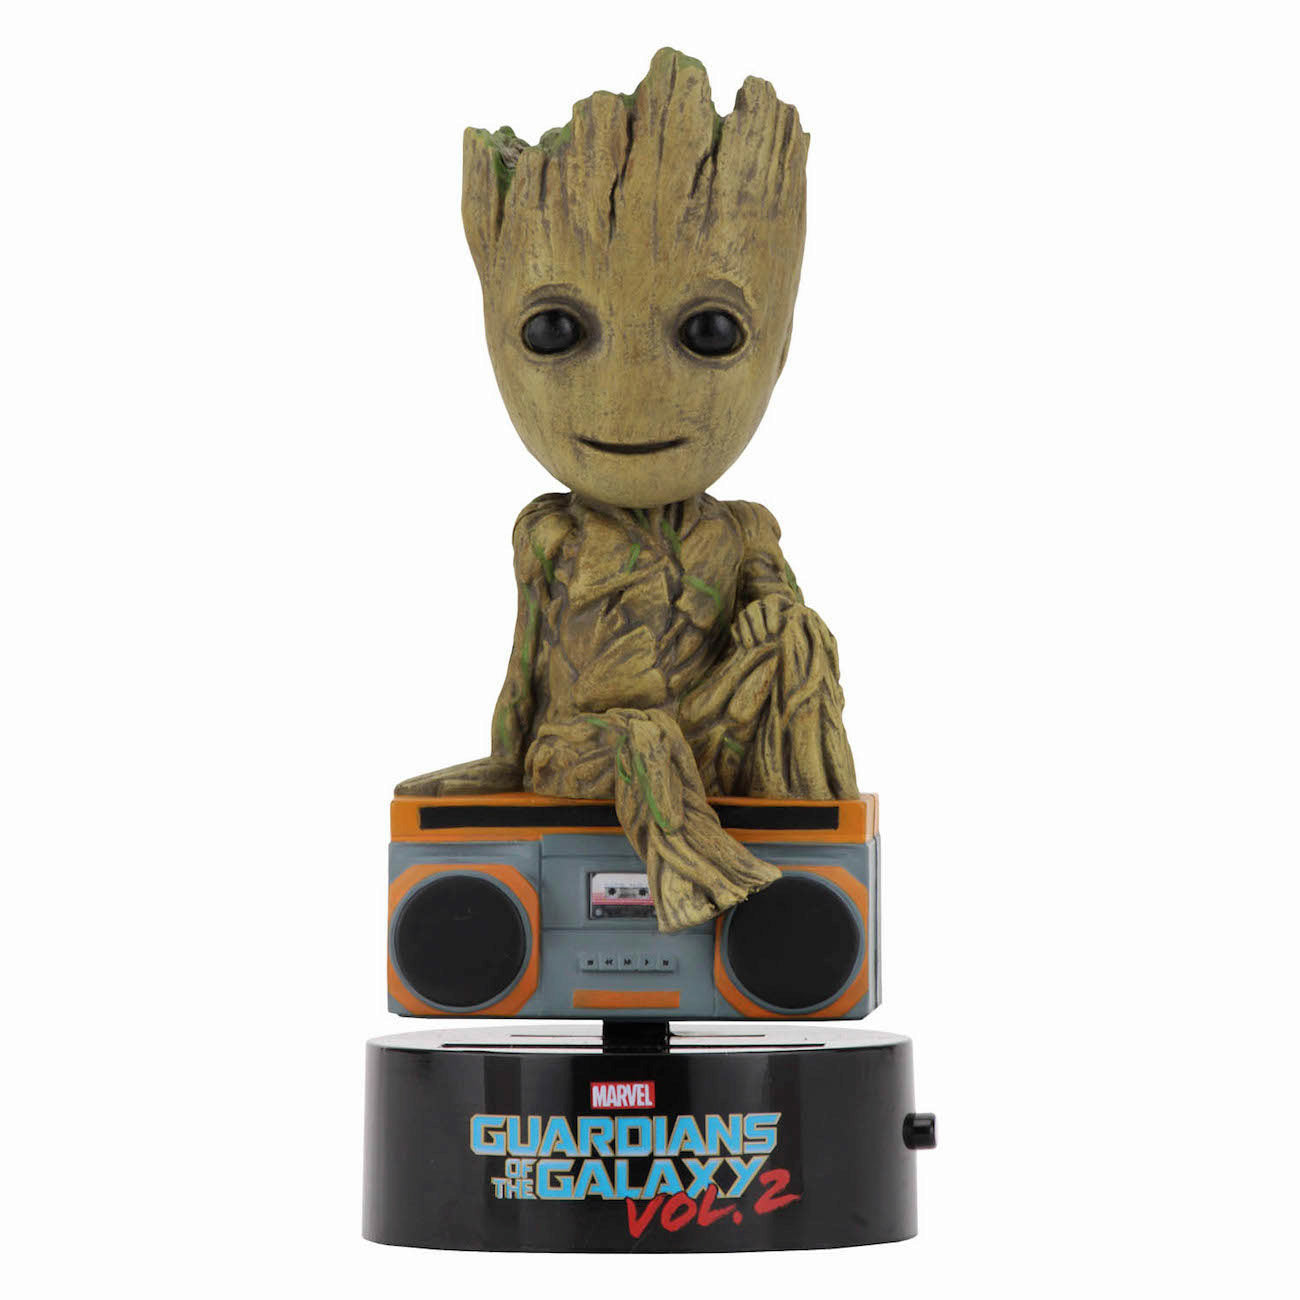 Marvel Guardians of the Galaxy 2 Groot Solar Powered Body Knocker